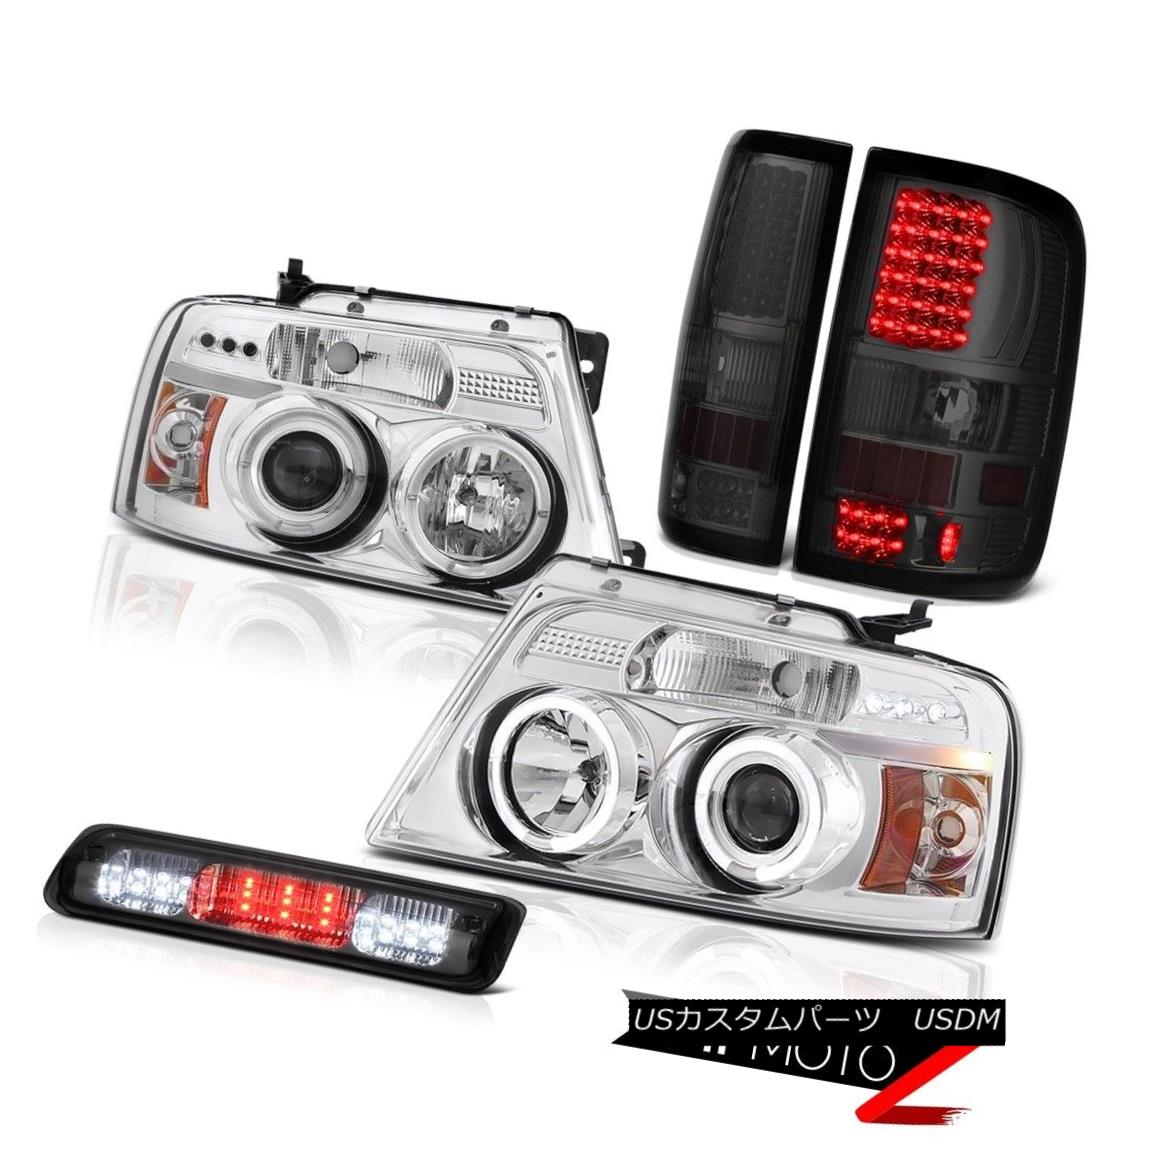 テールライト 04-08 Ford F150 STX Roof Cab Light Tail Lamps Headlights Halo Rim